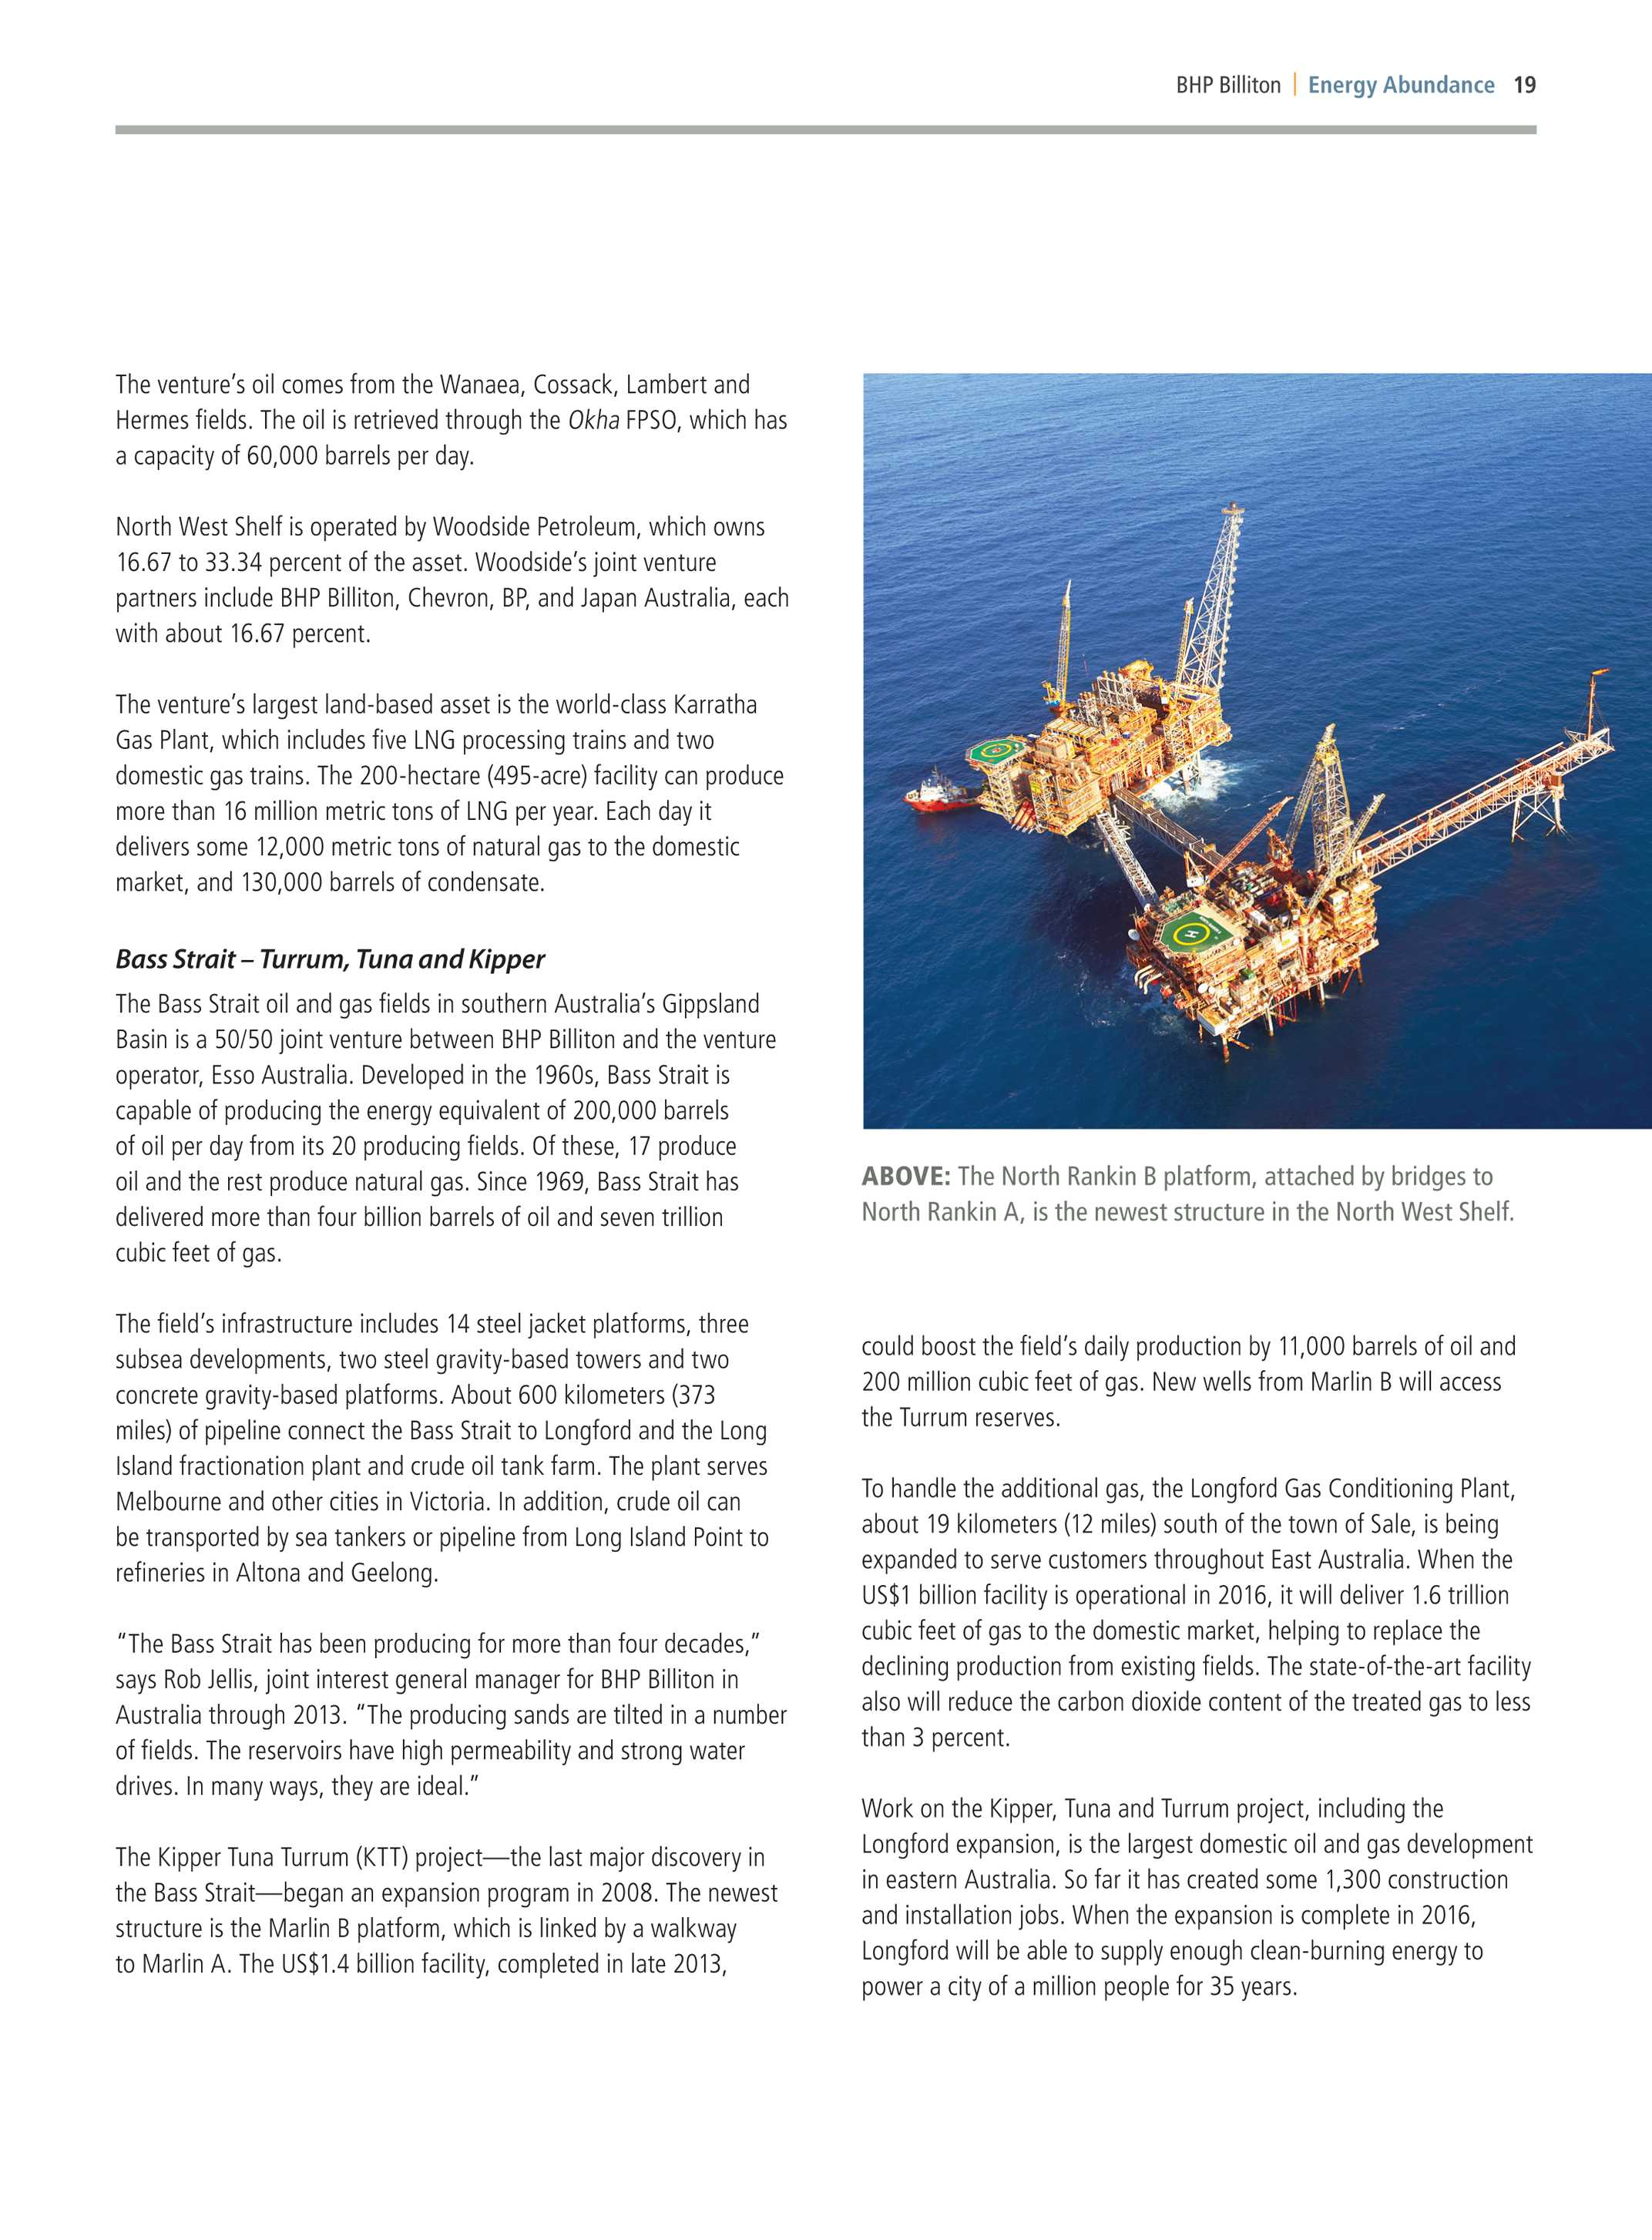 Offshore Magazine - March 2014 - page BHP19